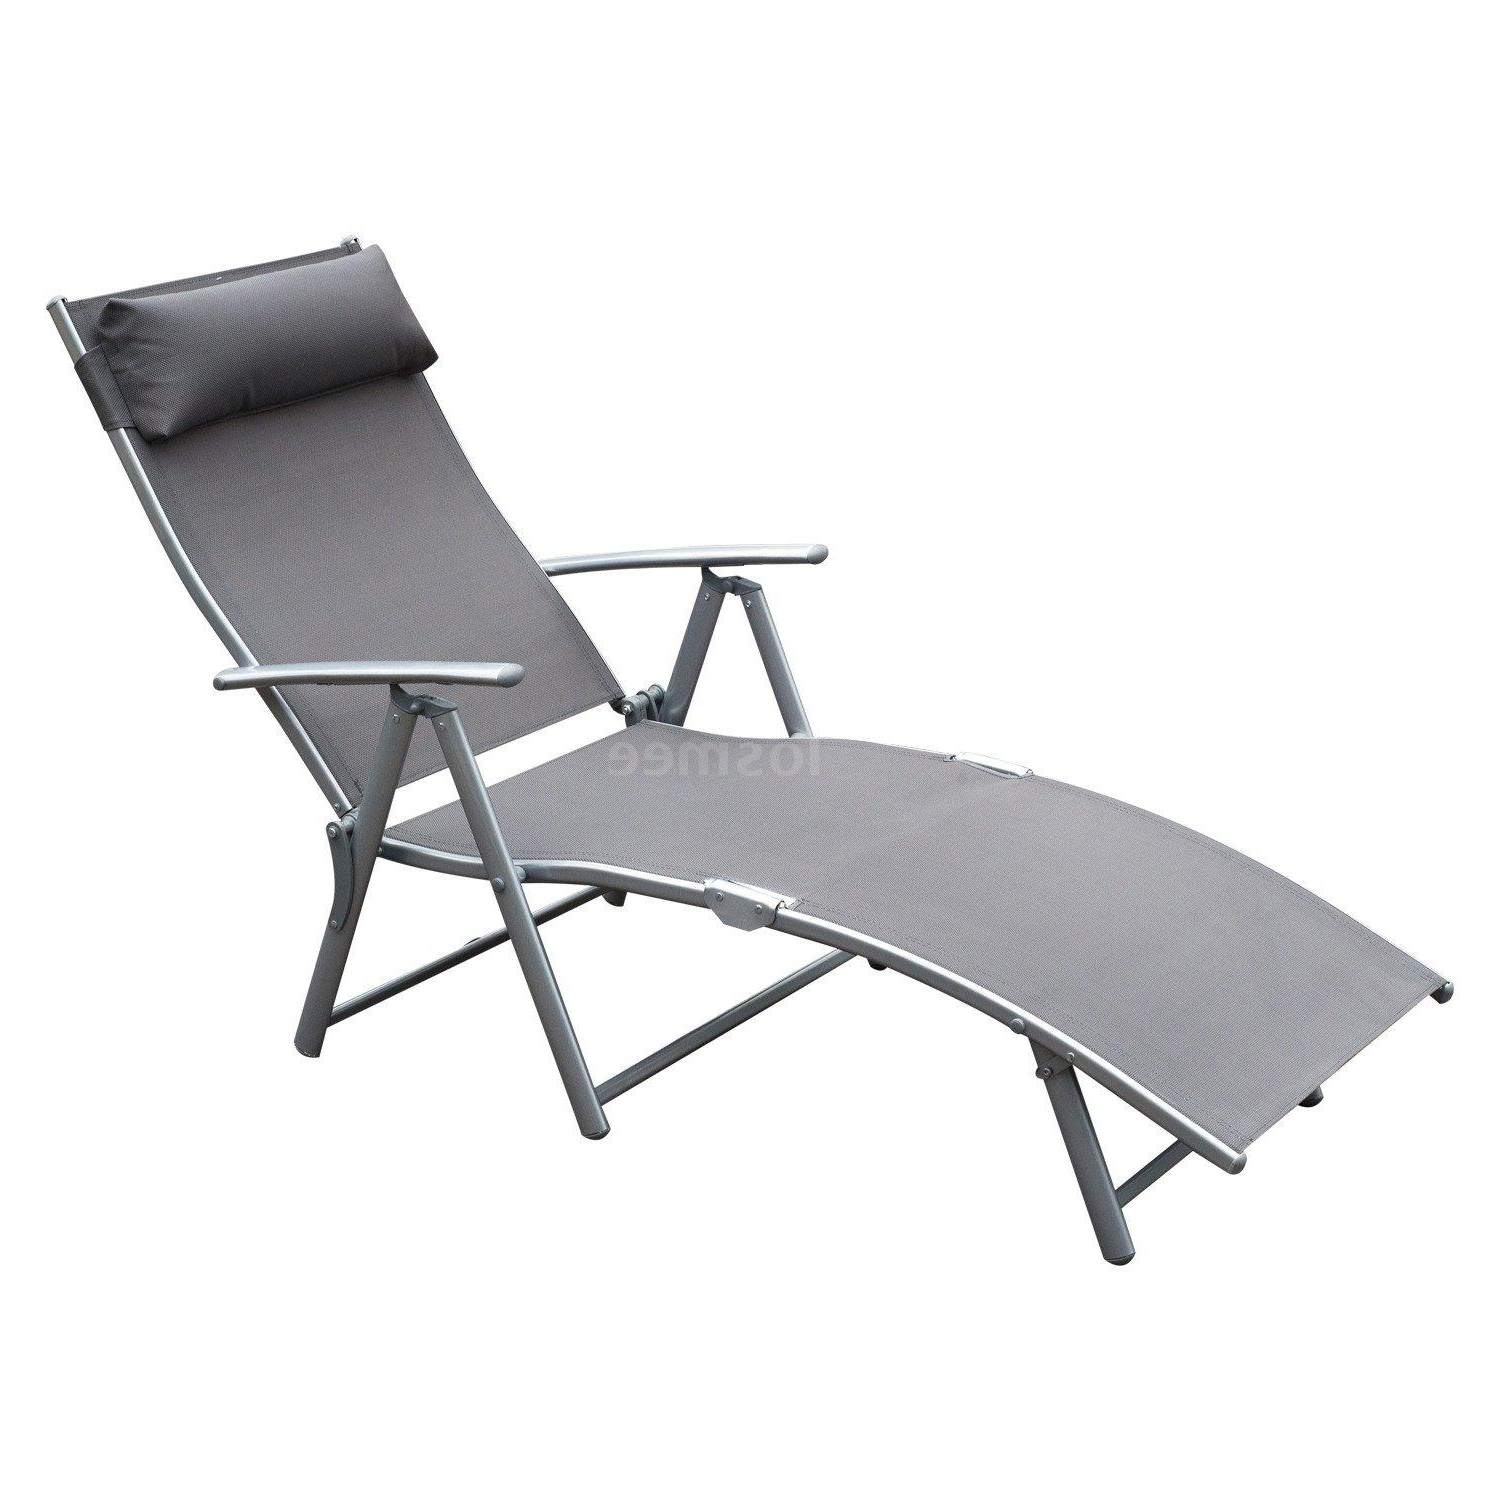 Favorite Details About Steel Sling Fabric Outdoor Folding Chaise Lounge Chair  Recliner – Grey Y4l1 Throughout Fabric Reclining Outdoor Chaise Lounges (View 18 of 25)